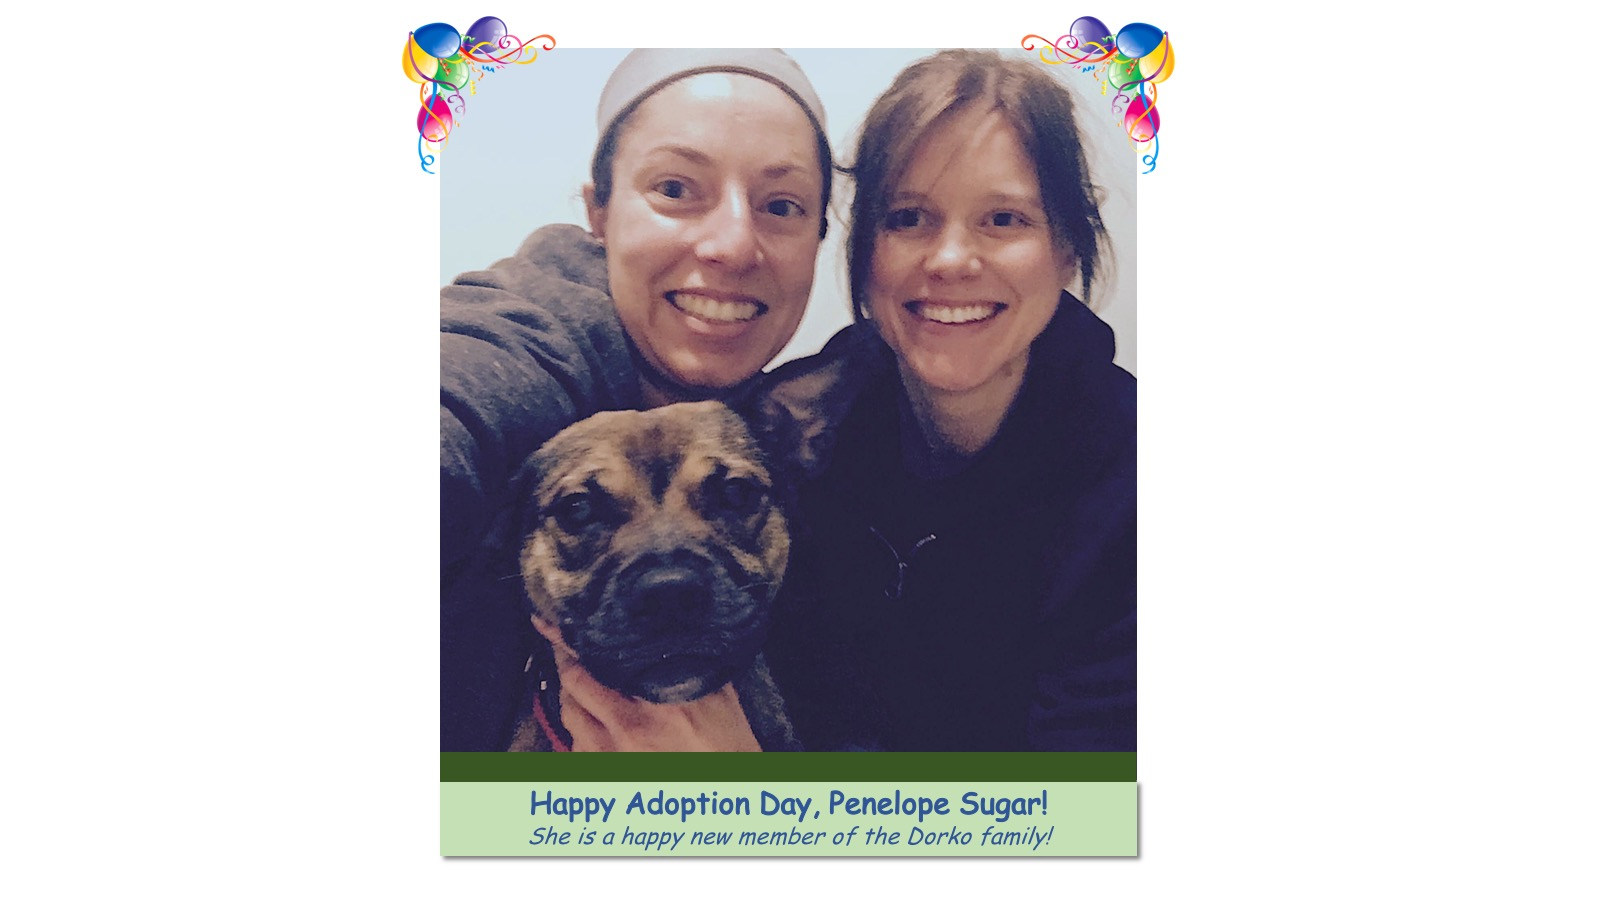 Penelope_Sugar_Adoption_Photo_2018.jpg